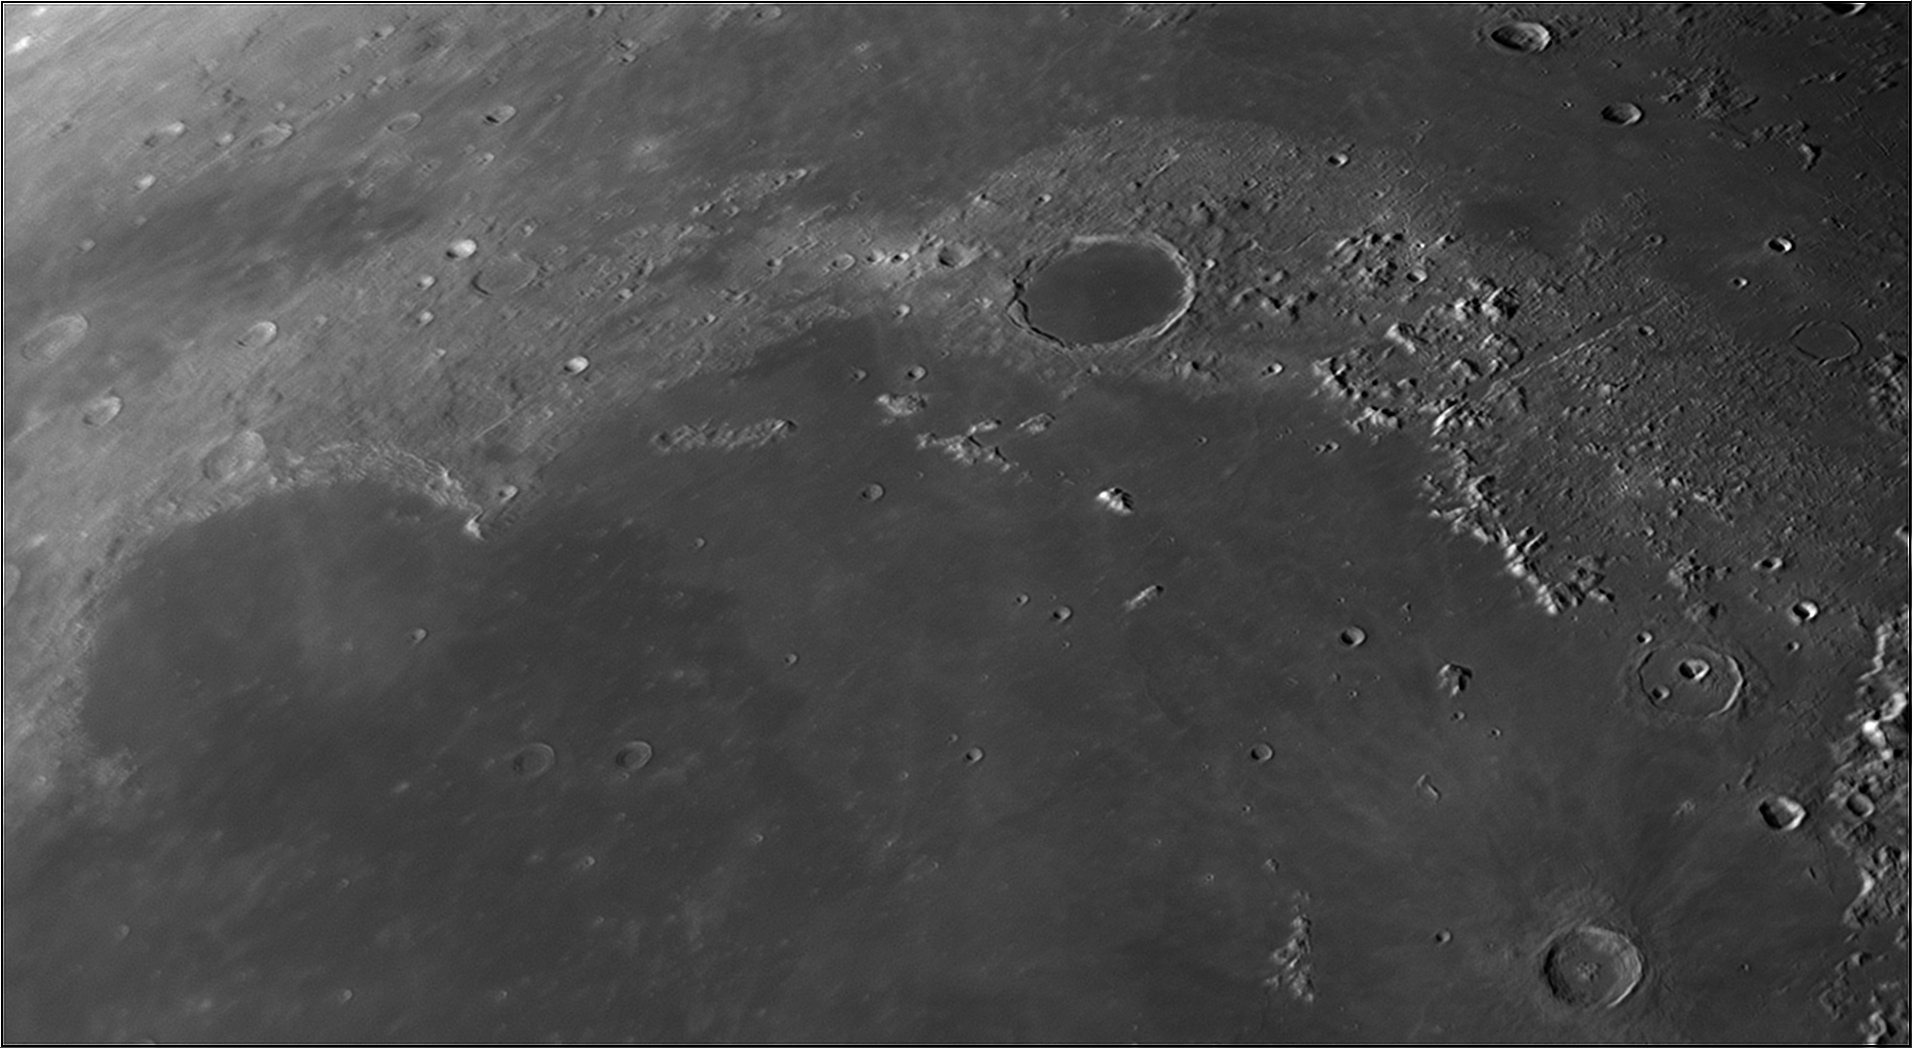 5dd1bd64ef206_Moon_074005_171119_ZWOASI290MM_IR_650nm_AS_P30_lapl4_ap1050.jpg.11142ee259c07804ef1f348e5b8cf634.jpg